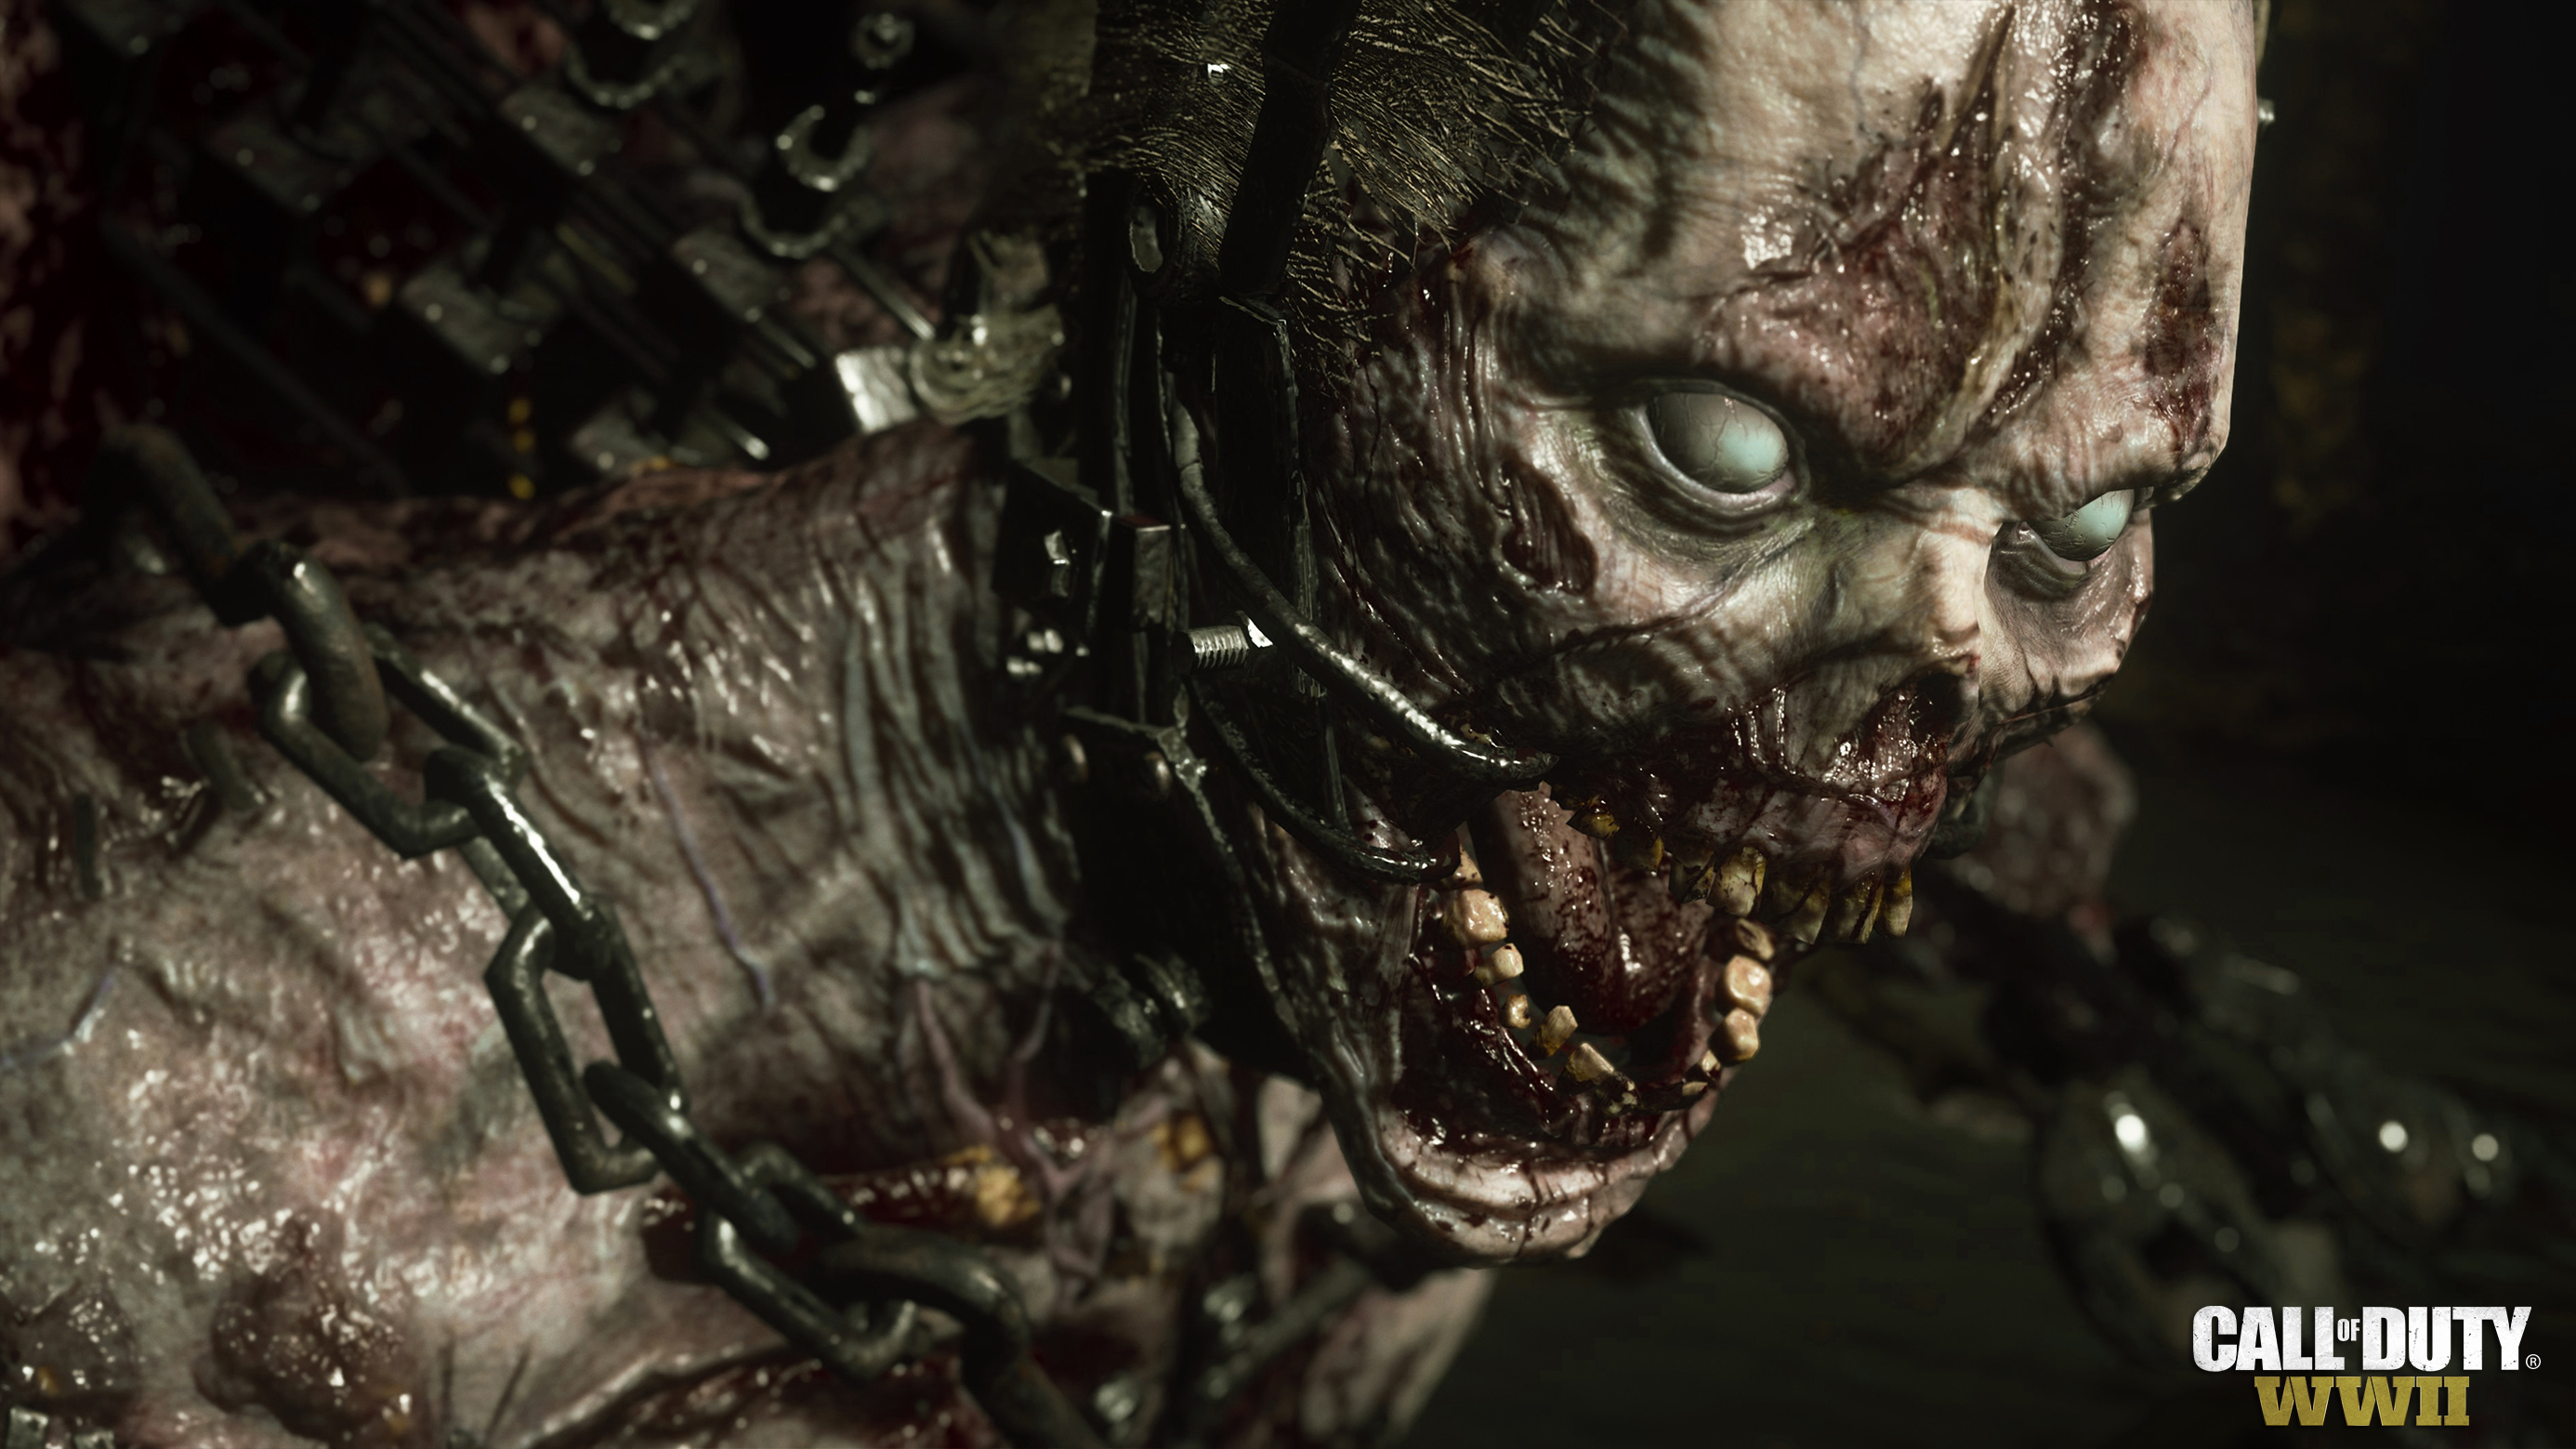 call of duty ww2 zombies wallpaper